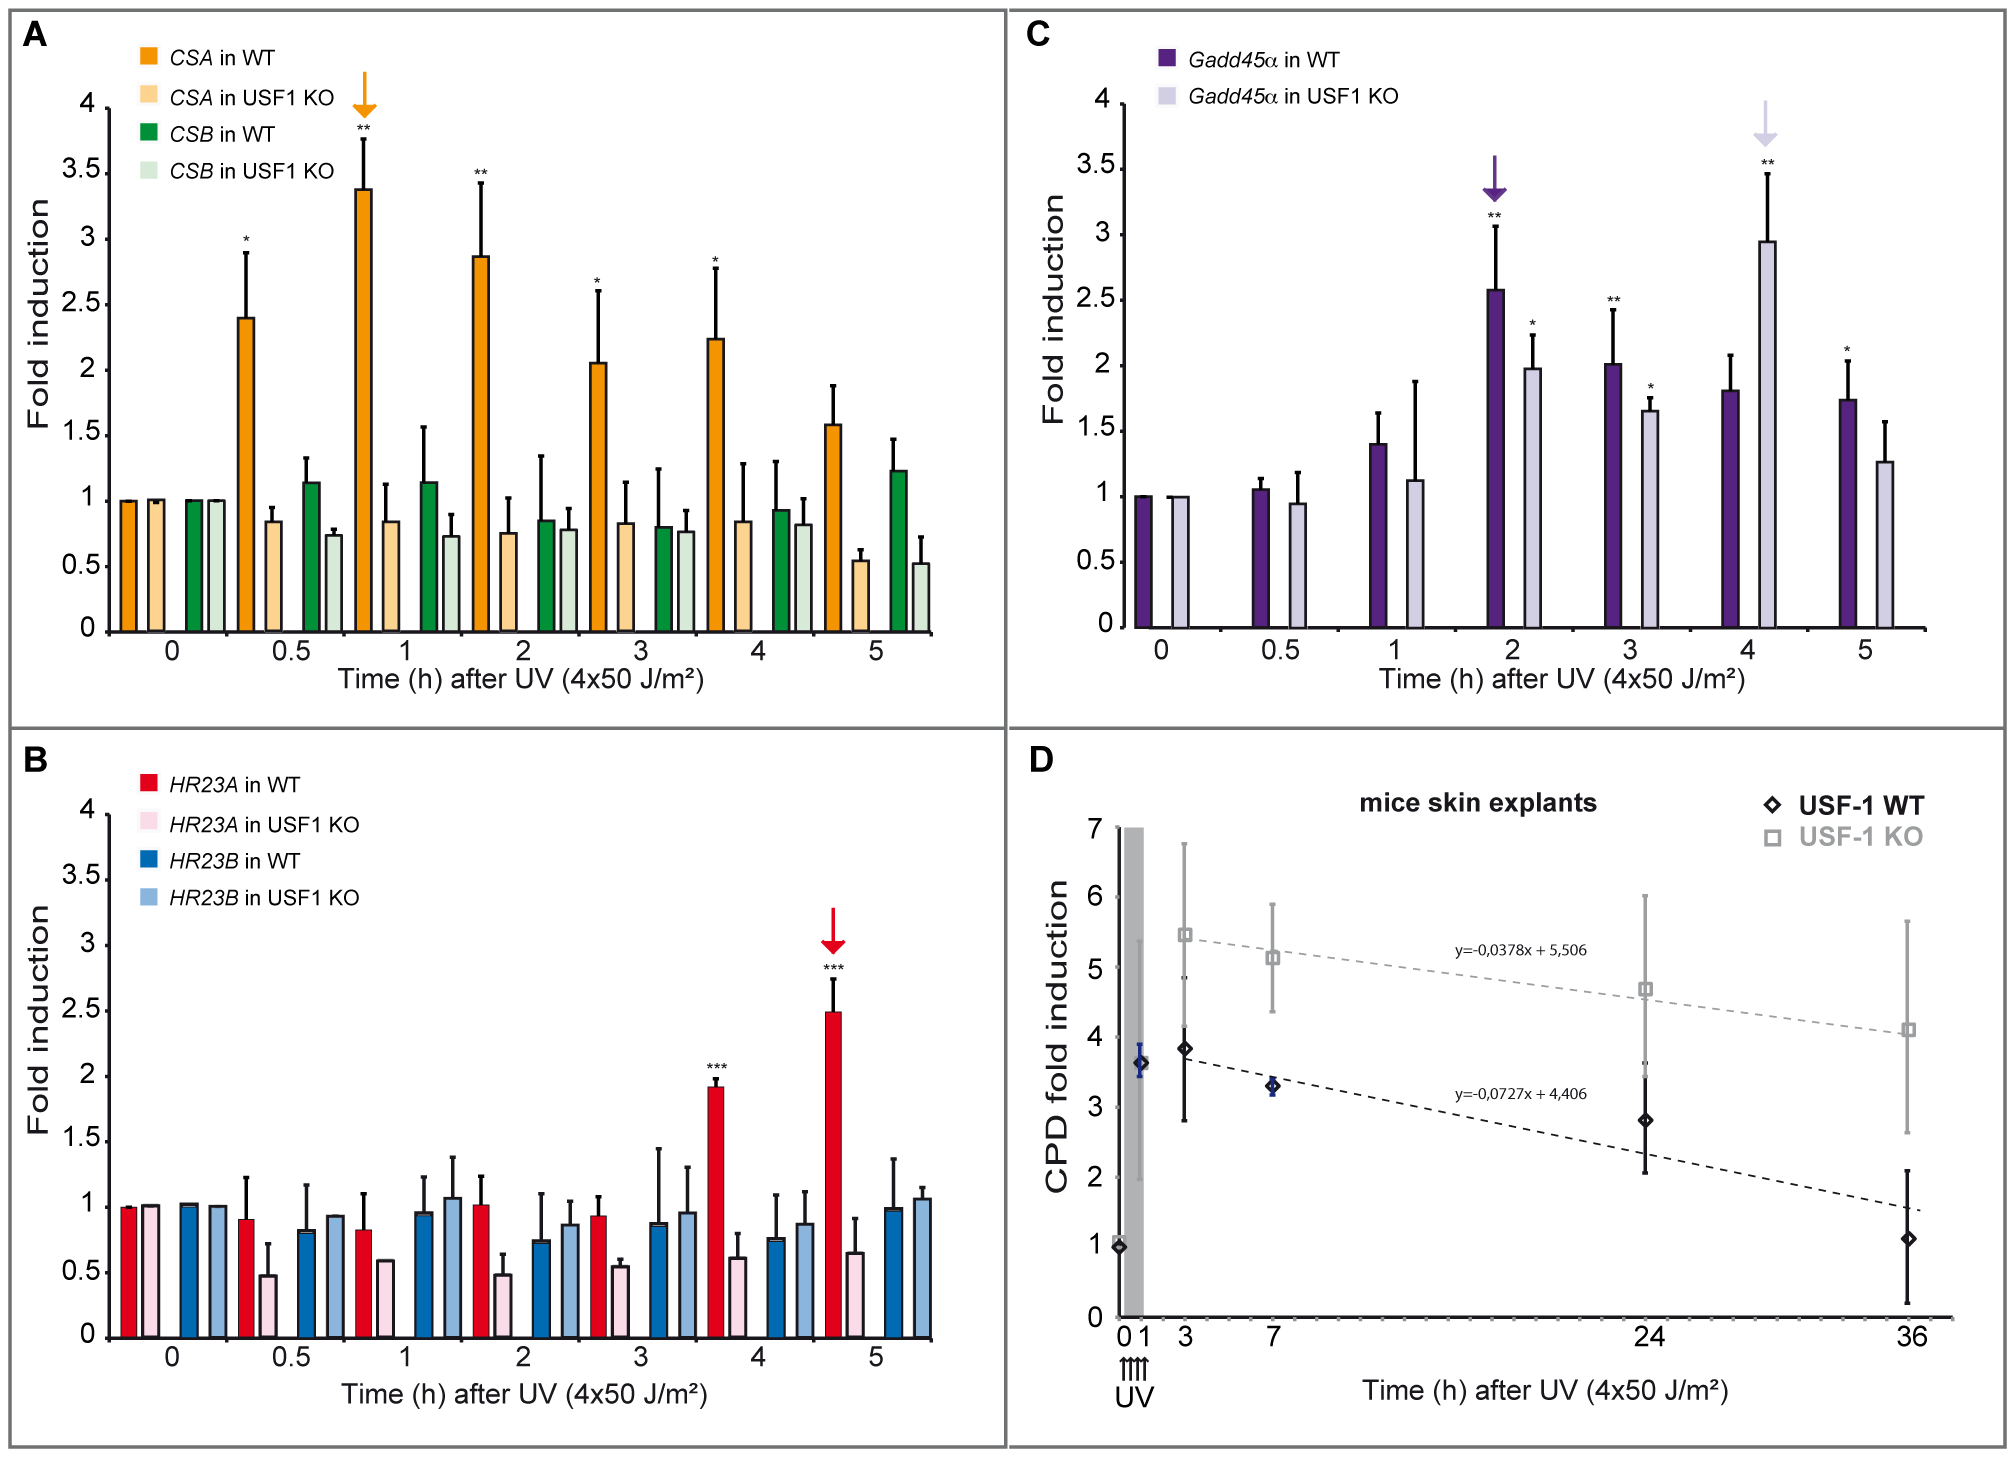 UV-induced <i>CSA</i> and <i>HR23A</i> expression is impaired in <i>USF-1</i> knock-out (KO) mice.